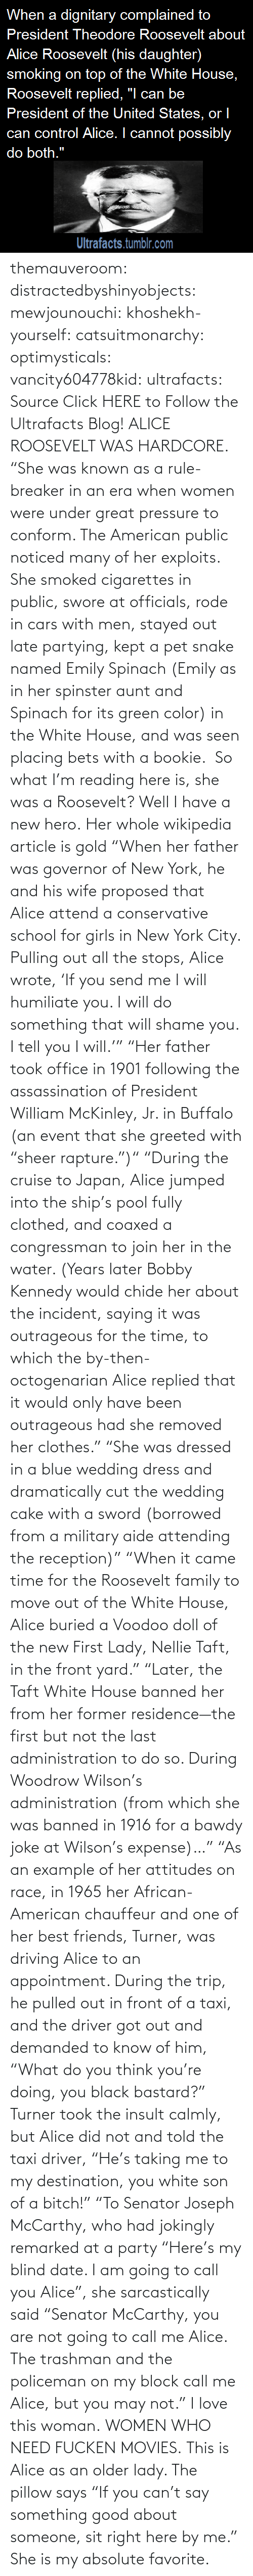 "Wiki: themauveroom: distractedbyshinyobjects:  mewjounouchi:  khoshekh-yourself:  catsuitmonarchy:  optimysticals:  vancity604778kid:  ultrafacts:     Source Click HERE to Follow the Ultrafacts Blog!     ALICE ROOSEVELT WAS HARDCORE. ""She was known as a rule-breaker in an era when women were under great pressure to conform. The American public noticed many of her exploits. She smoked cigarettes in public, swore at officials, rode in cars with men, stayed out late partying, kept a pet snake named Emily Spinach (Emily as in her spinster aunt and Spinach for its green color) in the White House, and was seen placing bets with a bookie.    So what I'm reading here is, she was a Roosevelt?  Well I have a new hero.  Her whole wikipedia article is gold ""When her father was governor of New York, he and his wife proposed that Alice attend a conservative school for girls in New York City. Pulling out all the stops, Alice wrote, 'If you send me I will humiliate you. I will do something that will shame you. I tell you I will.'"" ""Her father took office in 1901 following the assassination of President William McKinley, Jr. in Buffalo (an event that she greeted with ""sheer rapture."")"" ""During the cruise to Japan, Alice jumped into the ship's pool fully clothed, and coaxed a congressman to join her in the water. (Years later Bobby Kennedy would chide her about the incident, saying it was outrageous for the time, to which the by-then-octogenarian Alice replied that it would only have been outrageous had she removed her clothes."" ""She was dressed in a blue wedding dress and dramatically cut the wedding cake with a sword (borrowed from a military aide attending the reception)"" ""When it came time for the Roosevelt family to move out of the White House, Alice buried a Voodoo doll of the new First Lady, Nellie Taft, in the front yard."" ""Later, the Taft White House banned her from her former residence—the first but not the last administration to do so. During Woodrow Wilson's administration (from which she was banned in 1916 for a bawdy joke at Wilson's expense)…"" ""As an example of her attitudes on race, in 1965 her African-American chauffeur and one of her best friends, Turner, was driving Alice to an appointment. During the trip, he pulled out in front of a taxi, and the driver got out and demanded to know of him, ""What do you think you're doing, you black bastard?"" Turner took the insult calmly, but Alice did not and told the taxi driver, ""He's taking me to my destination, you white son of a bitch!"" ""To Senator Joseph McCarthy, who had jokingly remarked at a party ""Here's my blind date. I am going to call you Alice"", she sarcastically said ""Senator McCarthy, you are not going to call me Alice. The trashman and the policeman on my block call me Alice, but you may not.""  I love this woman.  WOMEN WHO NEED FUCKEN MOVIES.   This is Alice as an older lady. The pillow says ""If you can't say something good about someone, sit right here by me.""  She is my absolute favorite."